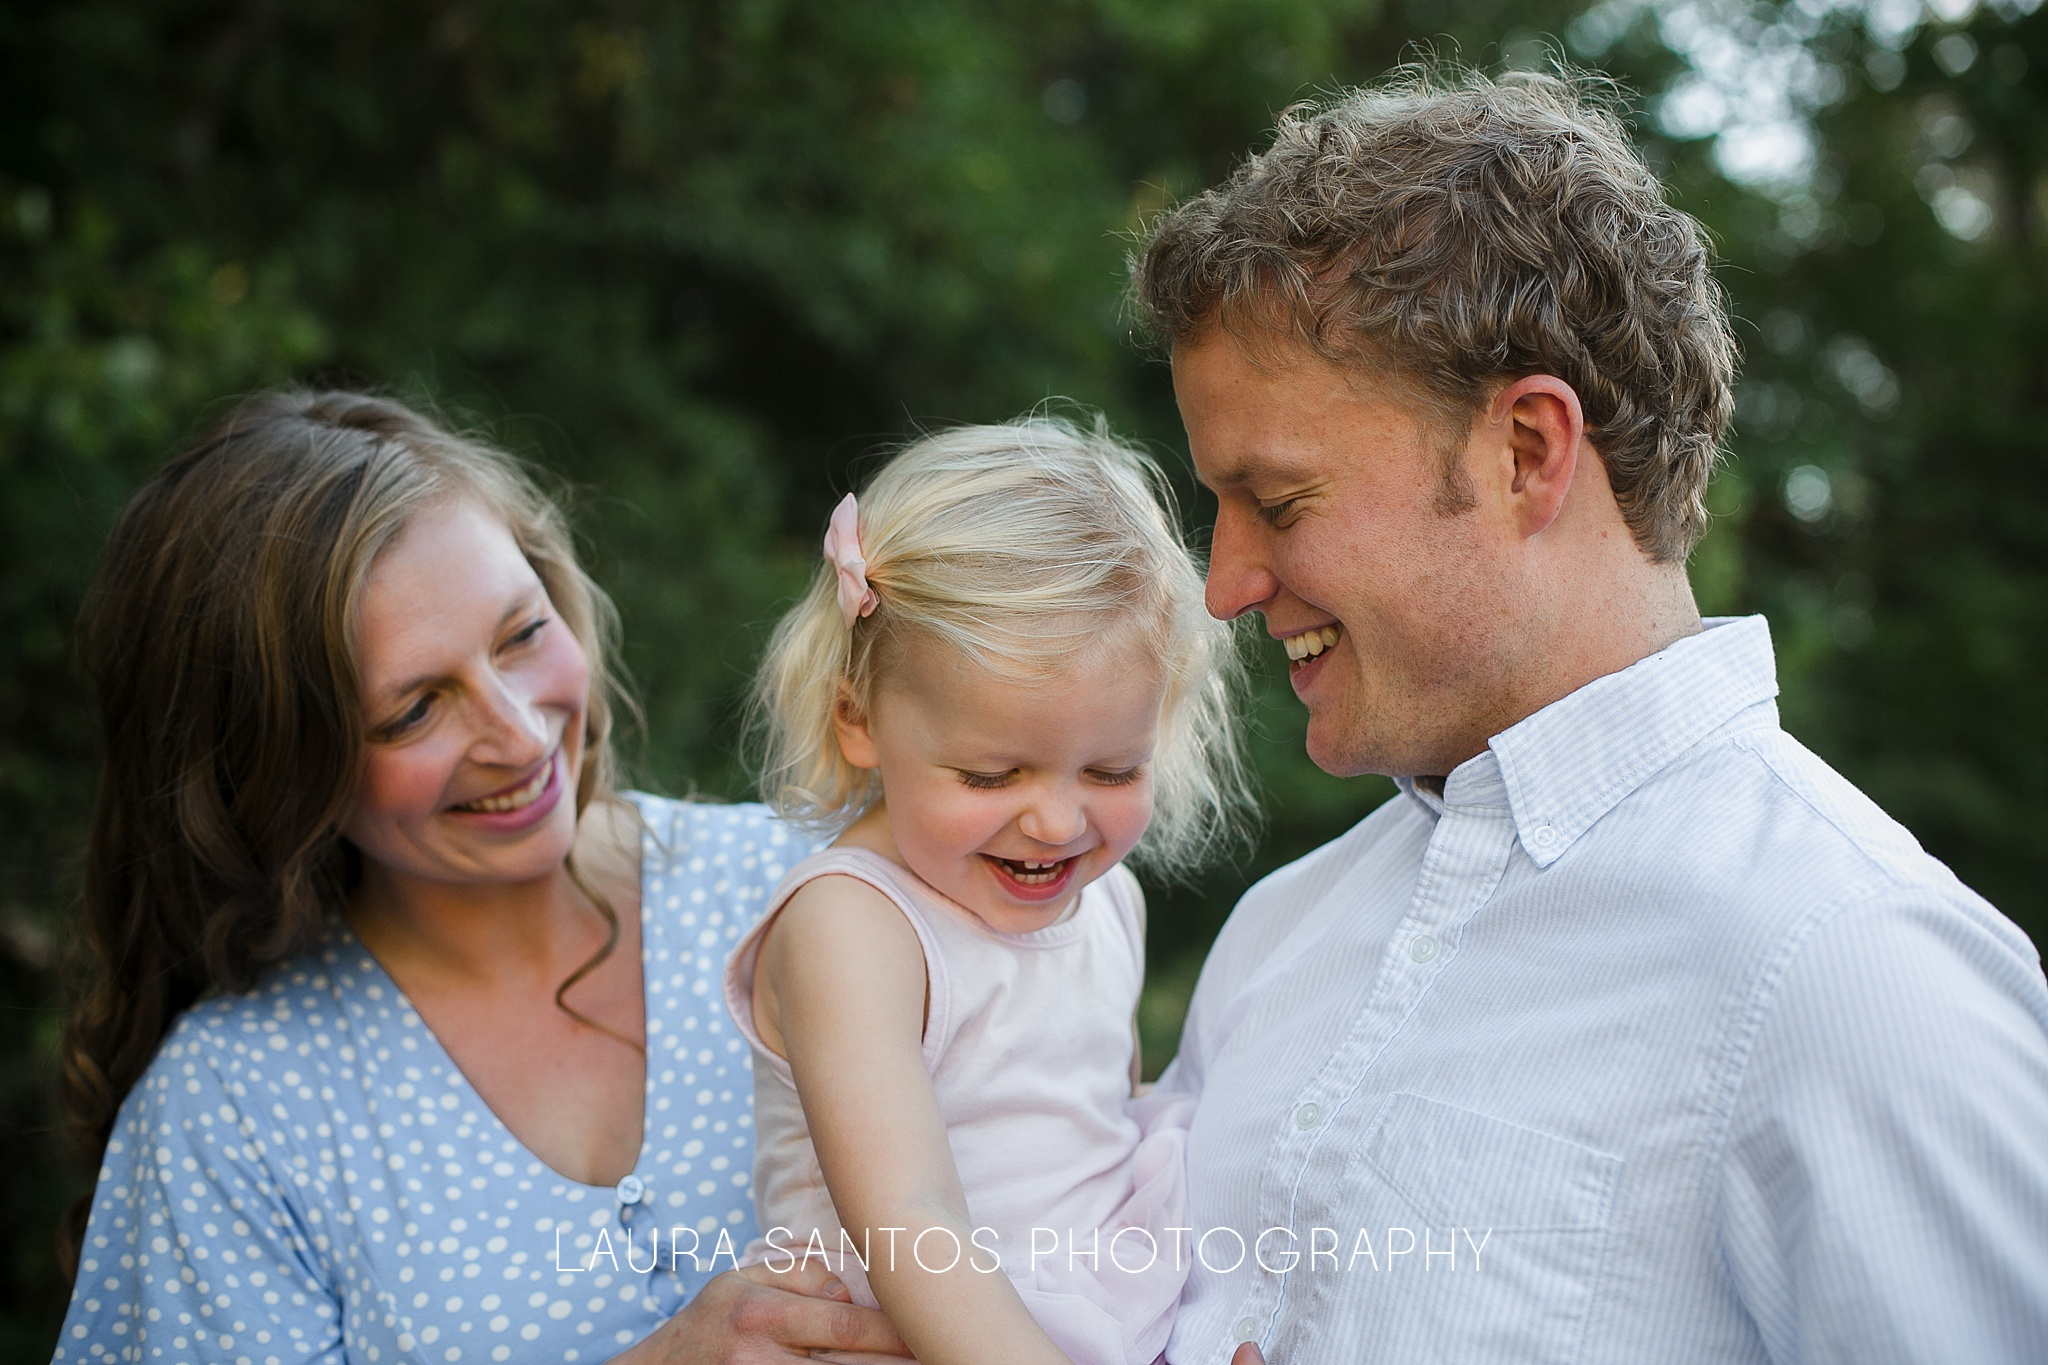 Laura Santos Photography Portland Oregon Family Photographer_0739.jpg